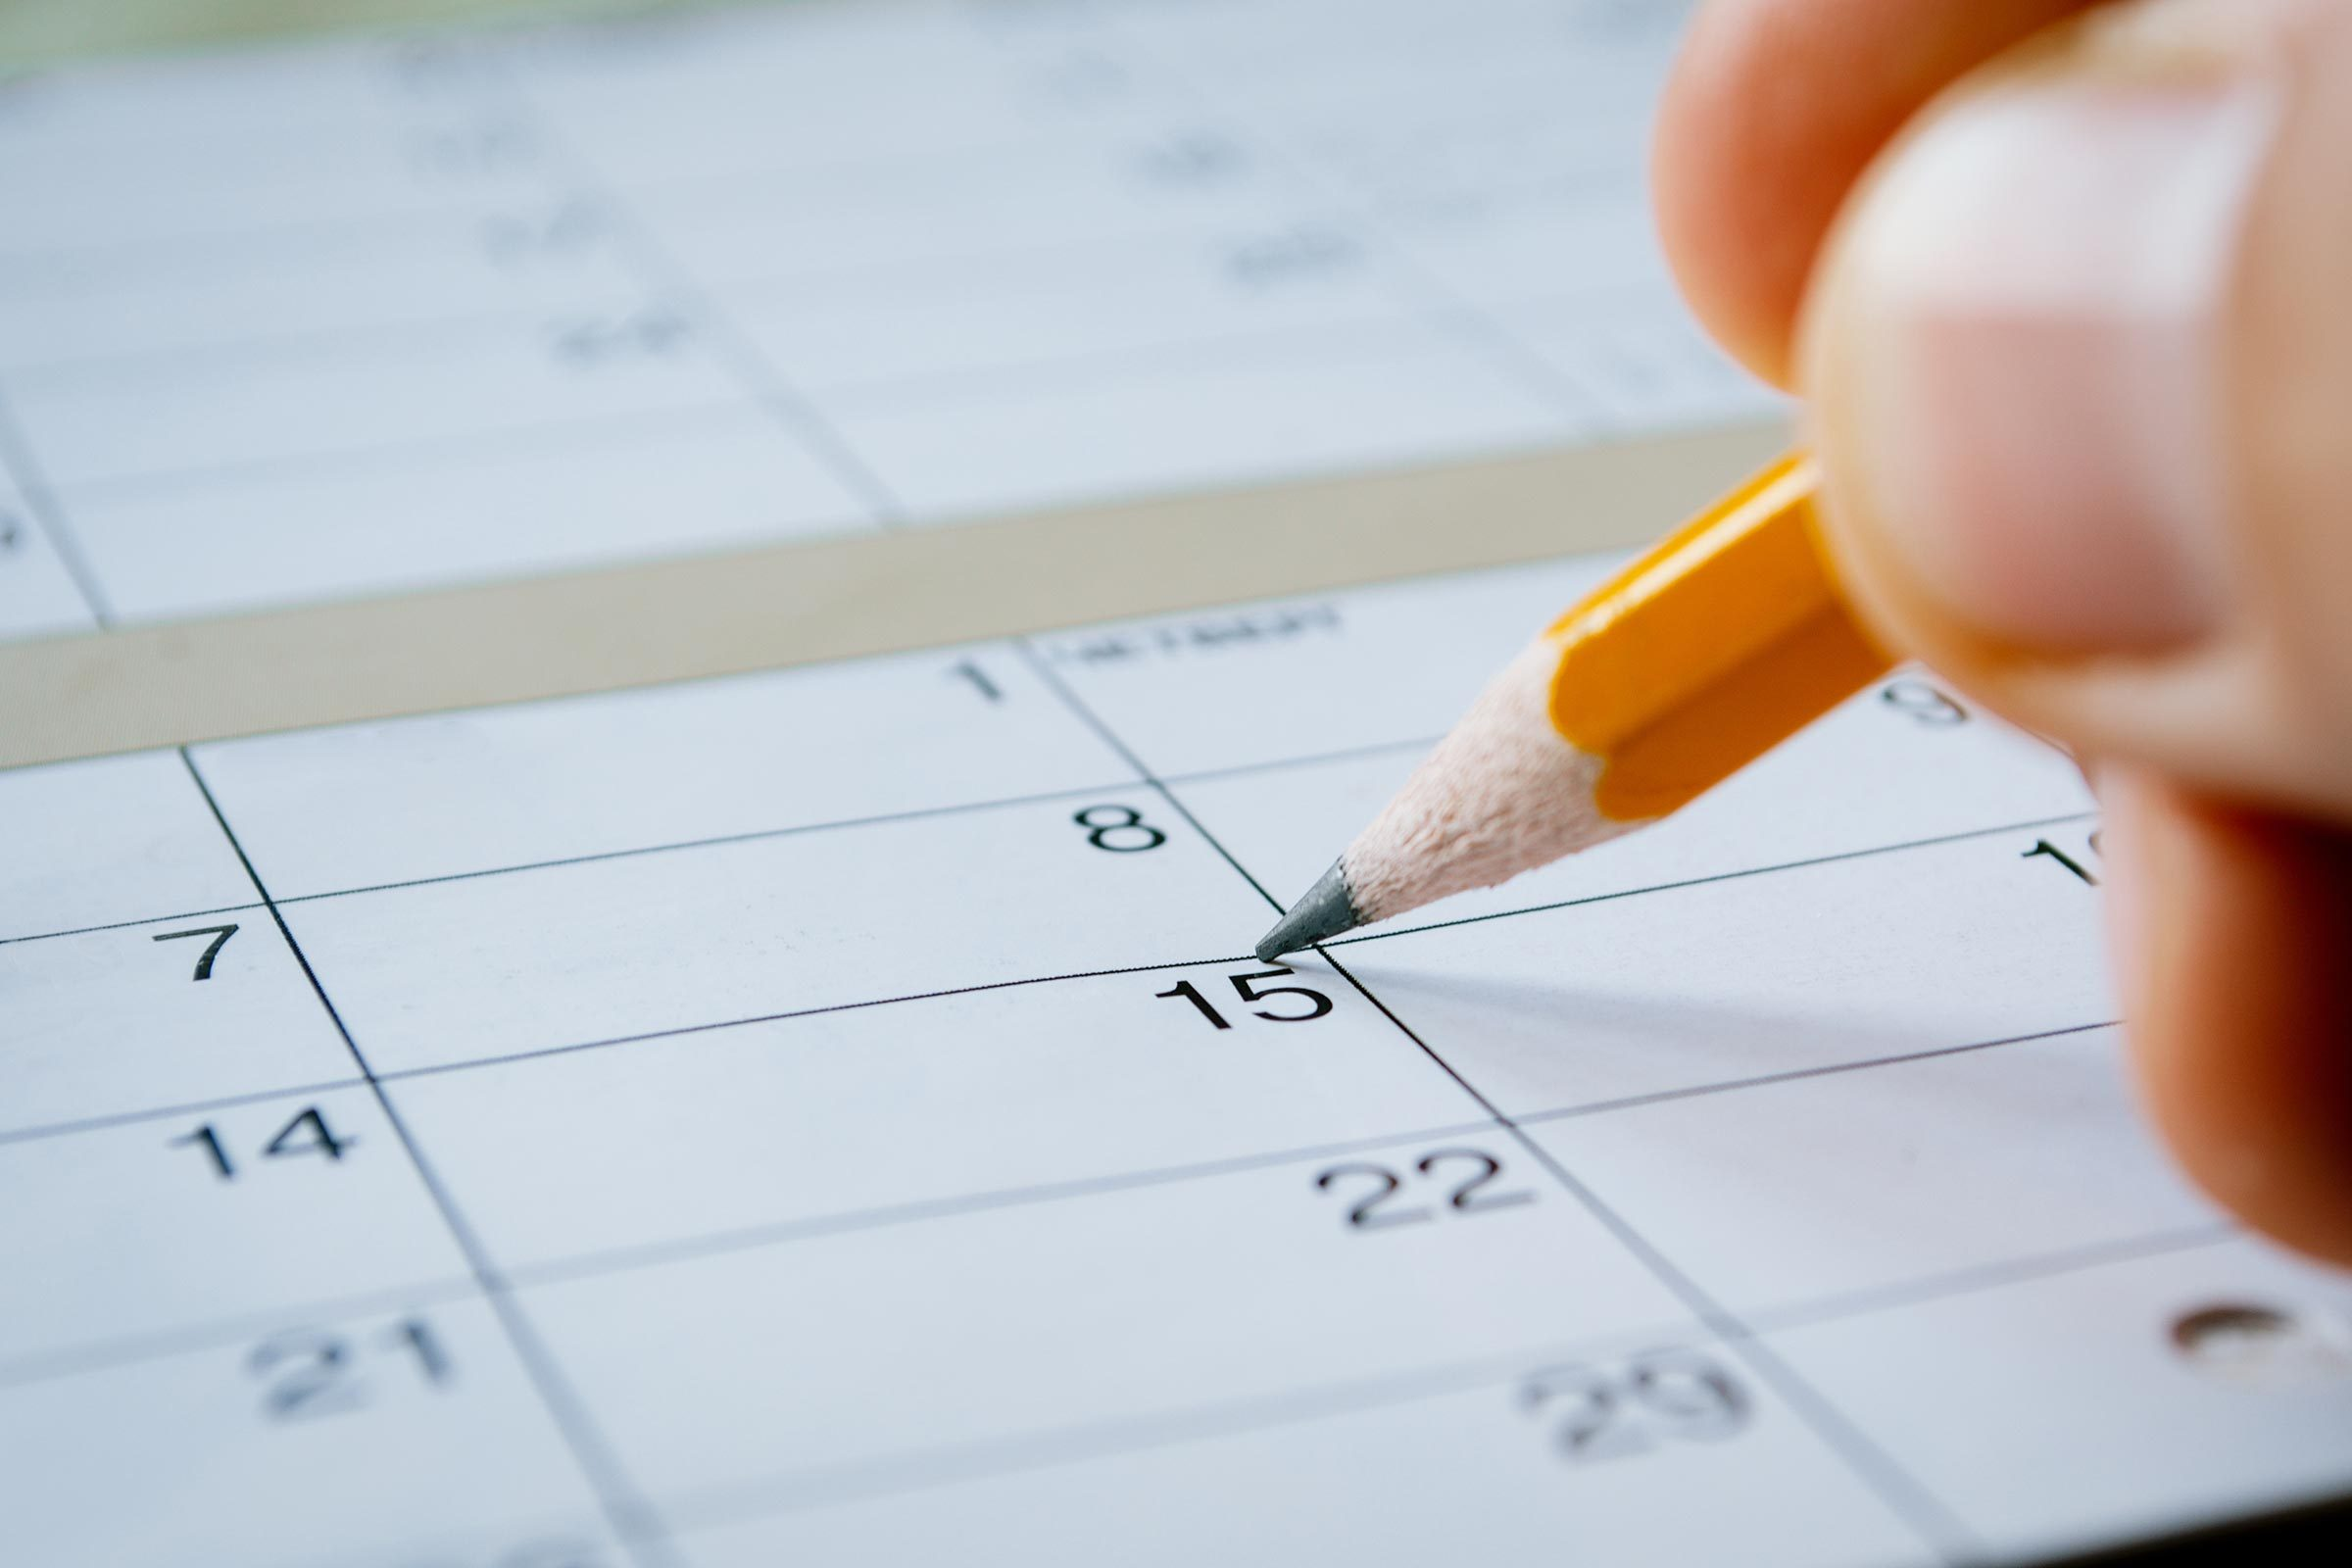 person writing in pencil on a calendar